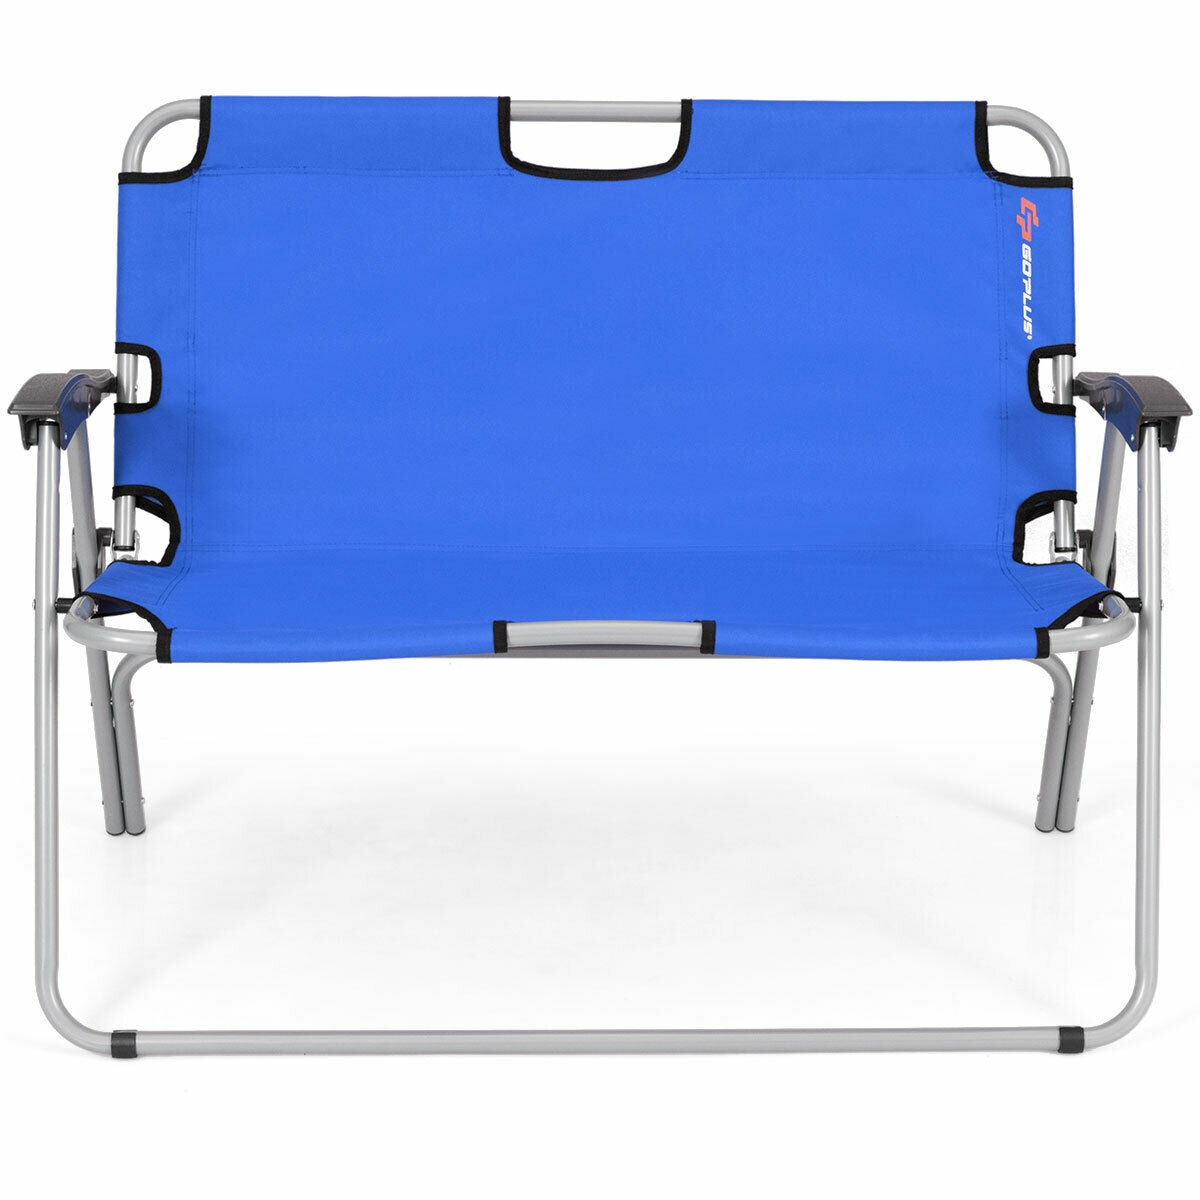 2 Person Folding Camping Bench Portable Double Chair-Blue